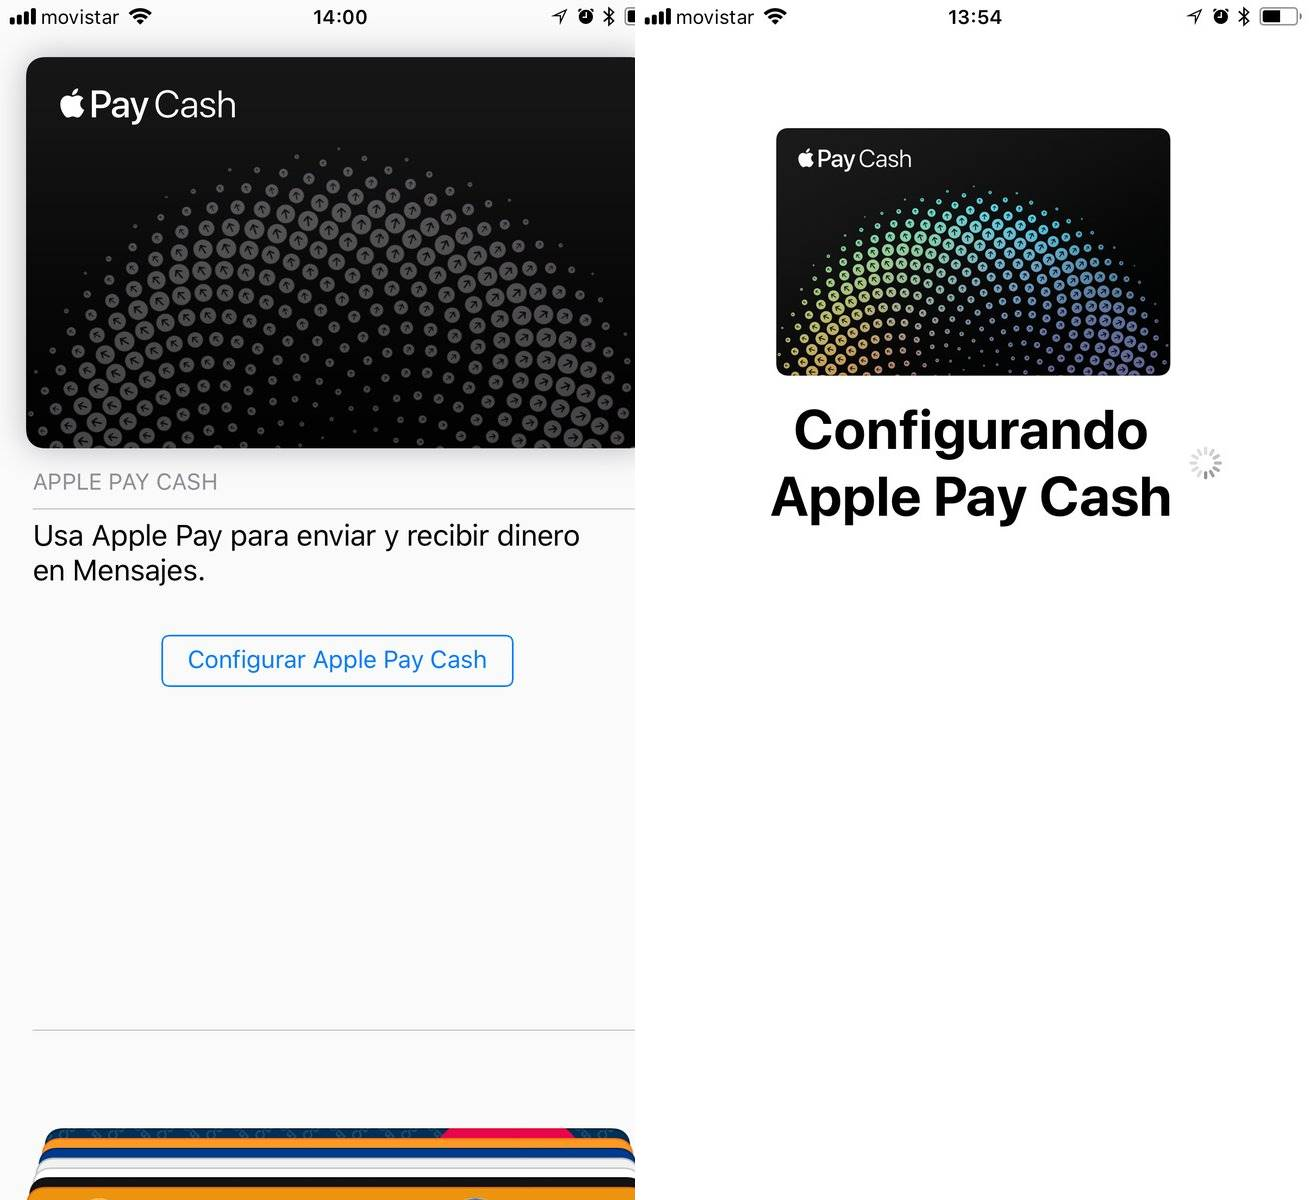 Apple Pay Cash europa